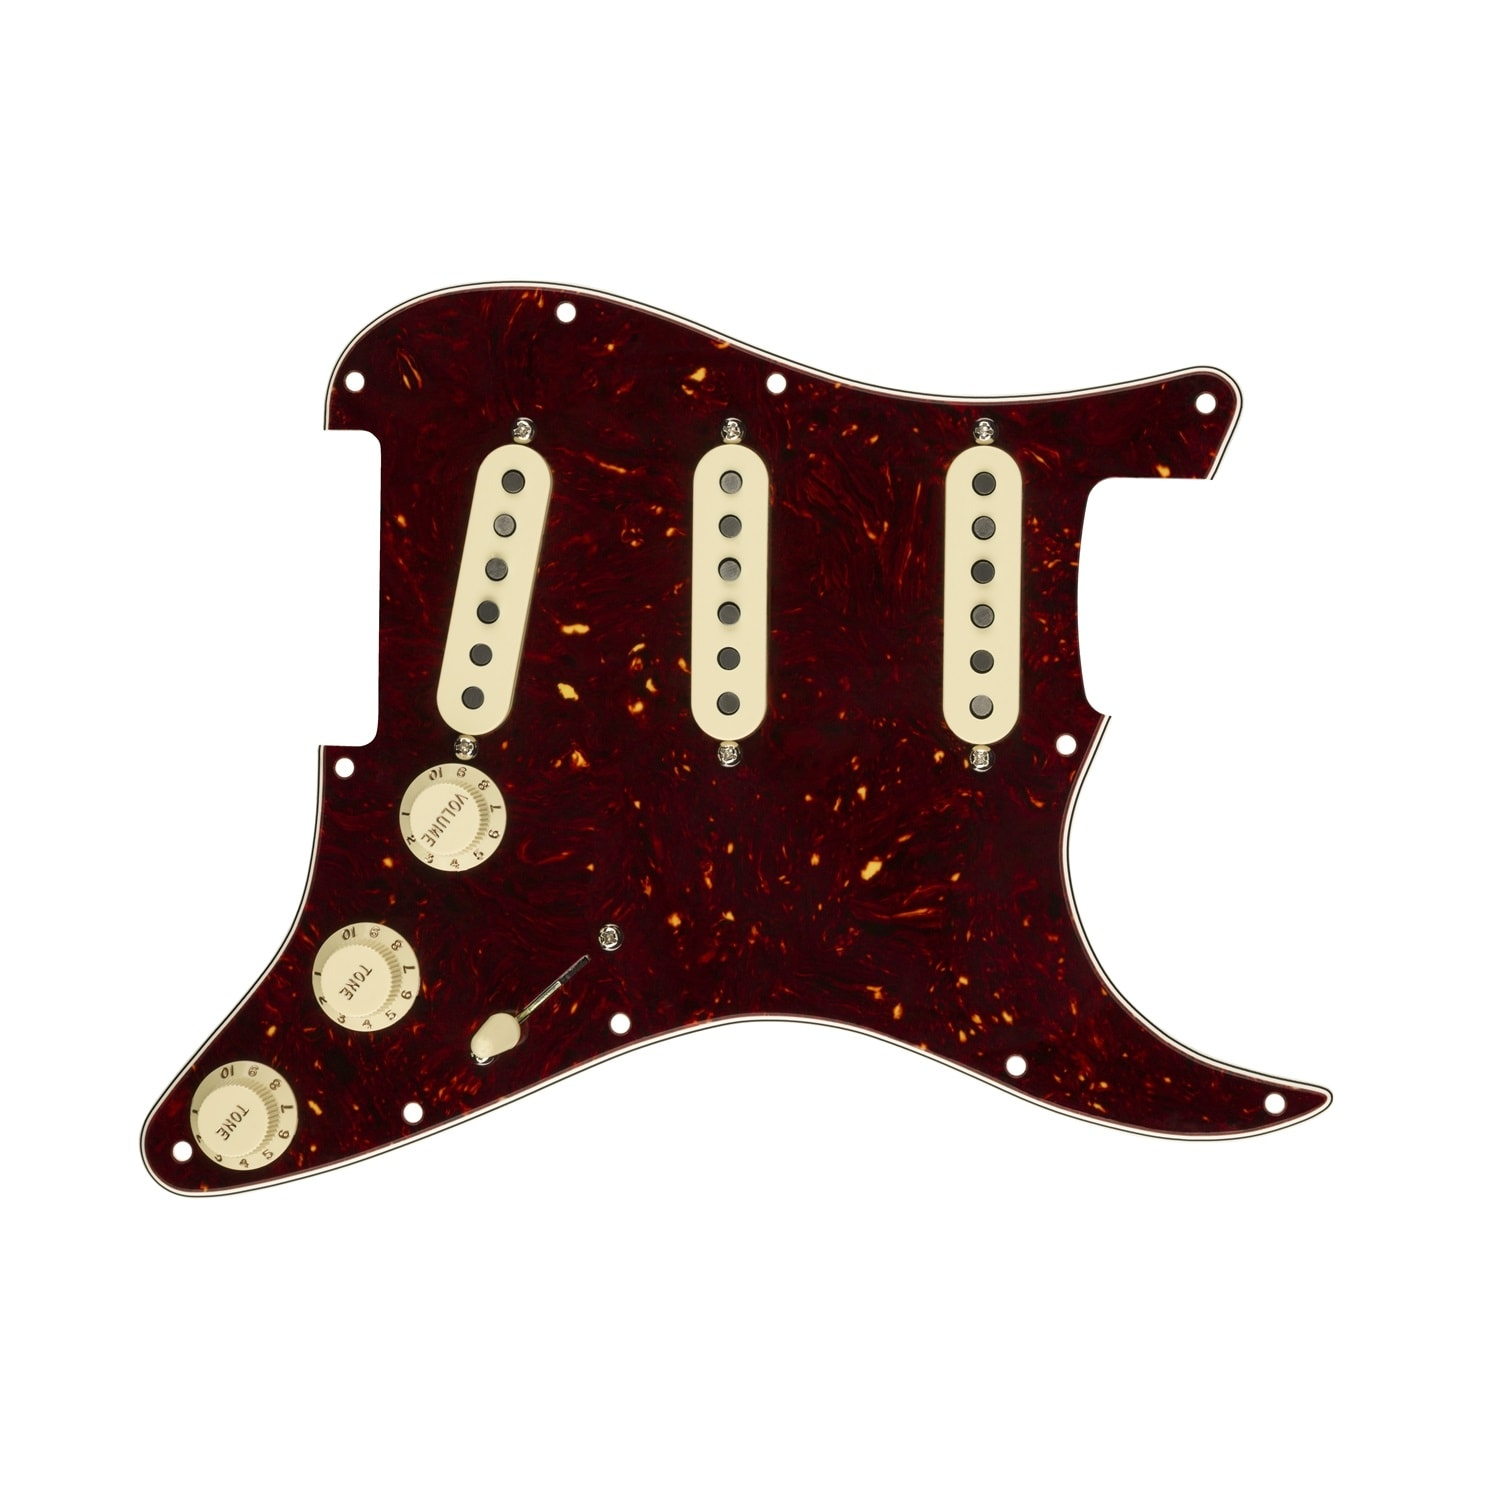 fender pre wired strat pickguard custom shop custom 39 69 sss 11 hole tortoise solo guitars. Black Bedroom Furniture Sets. Home Design Ideas